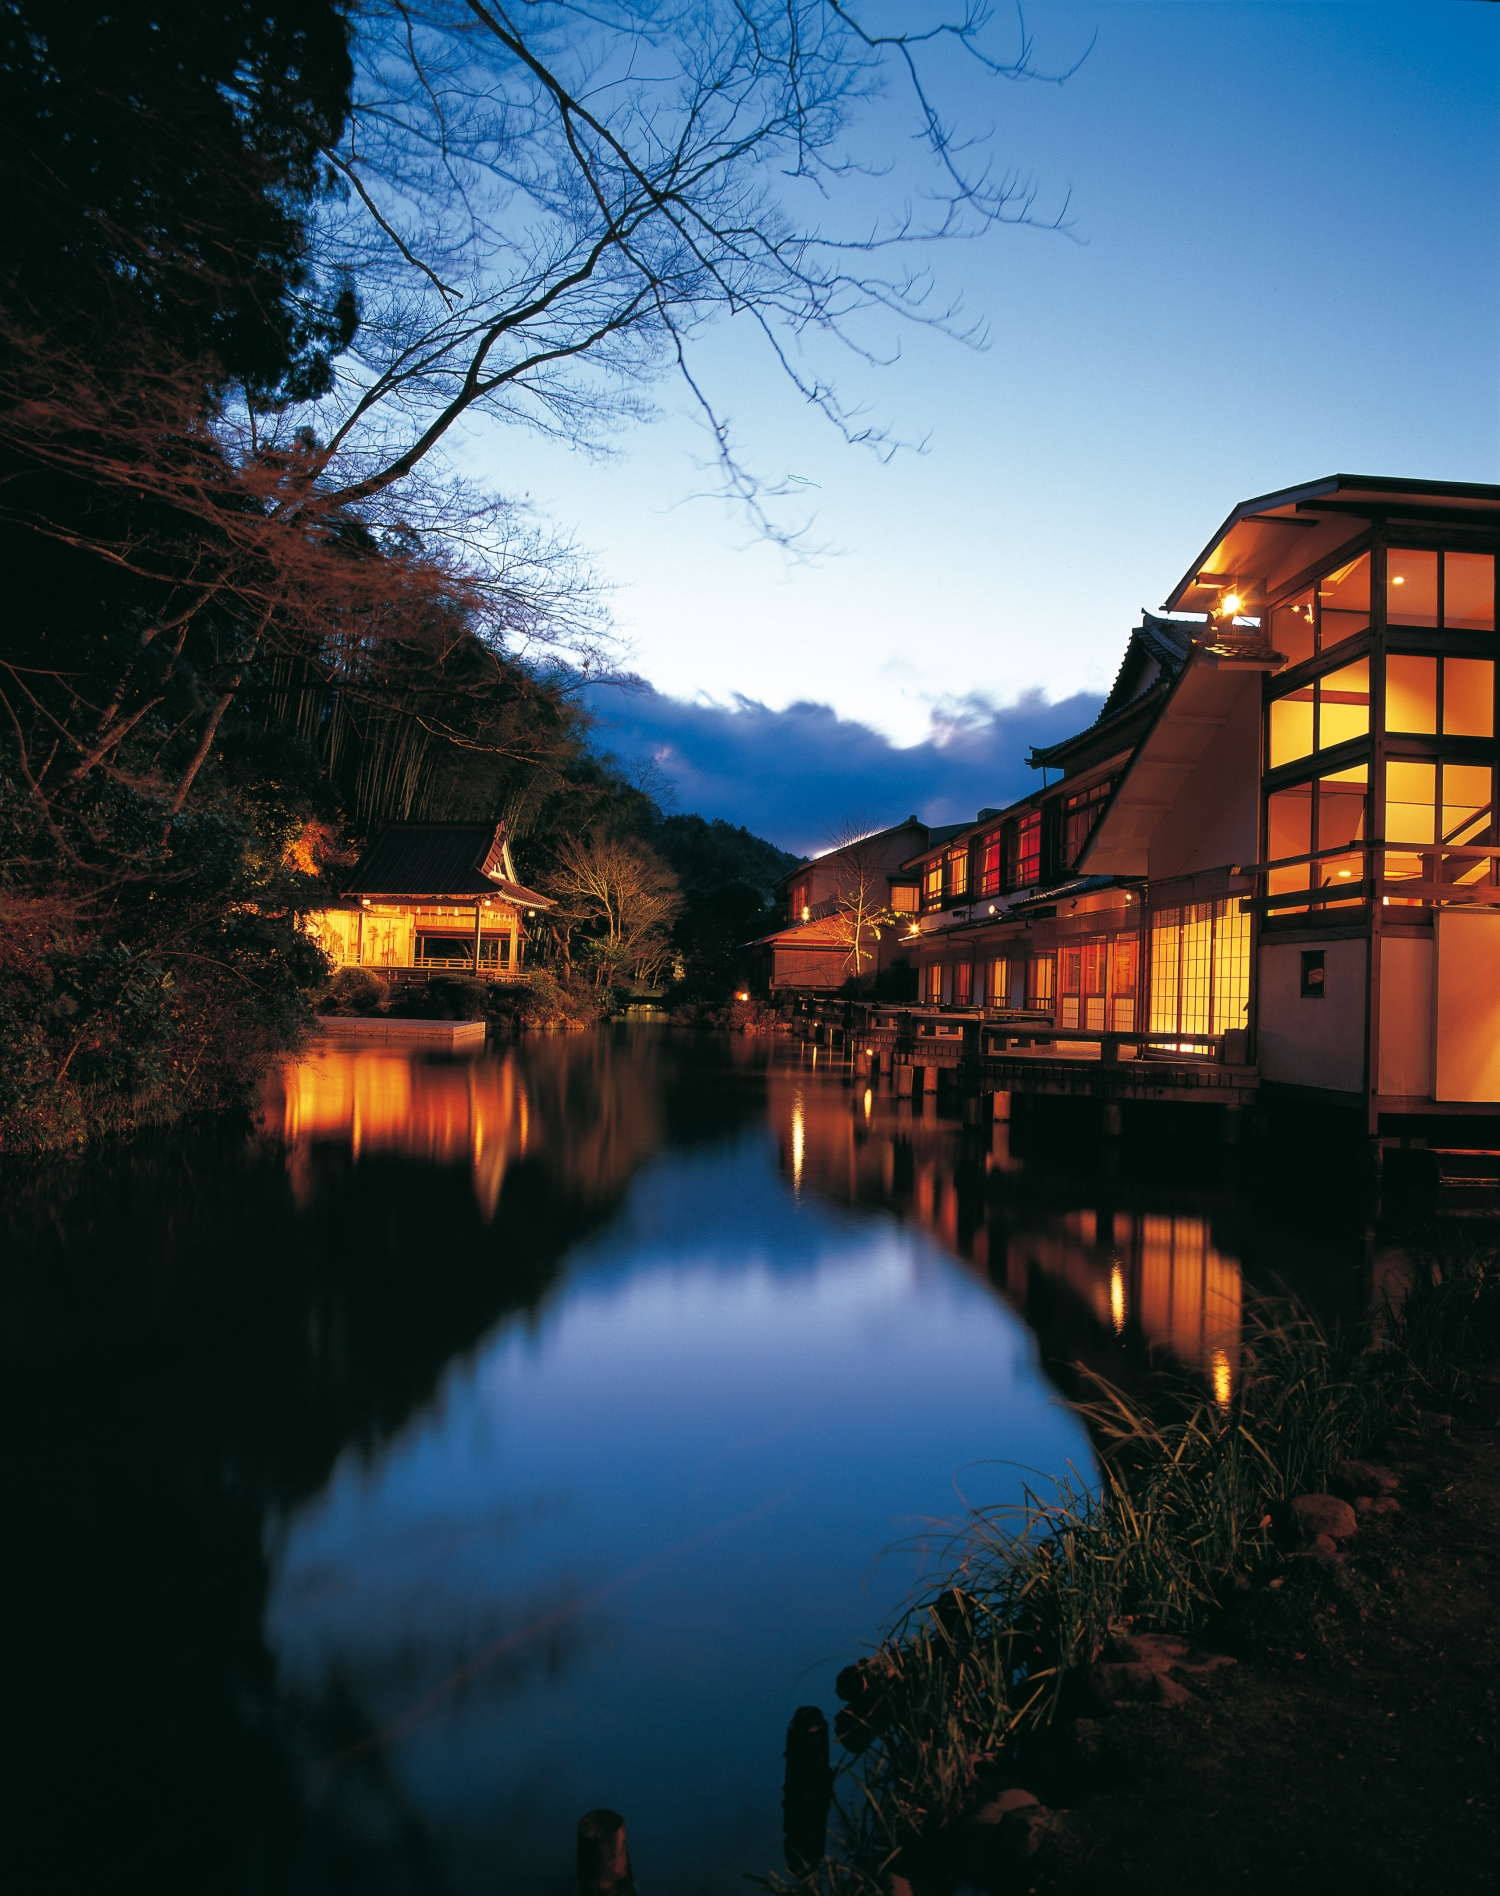 Asaba, Boutique Hotel in Izu-shi village, Shizuoka-Ken, Japan